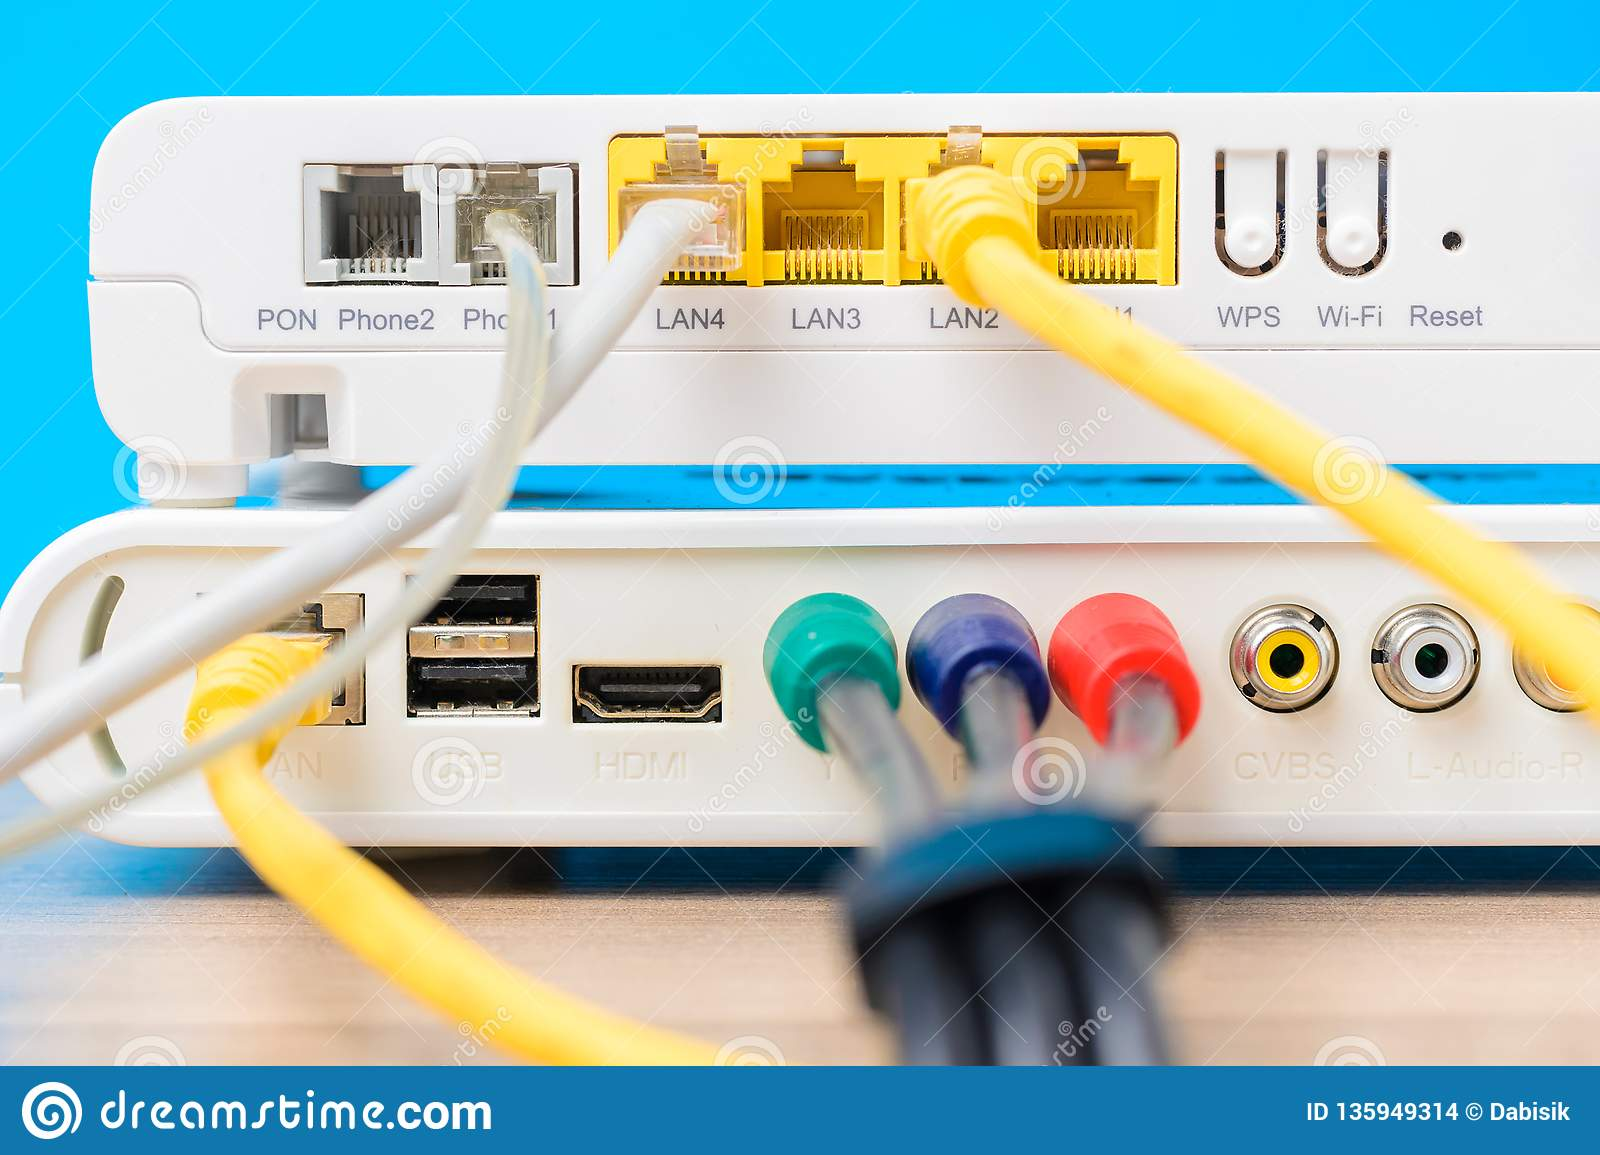 hight resolution of home wireless router with ethernet cables plugged in on blue background close up